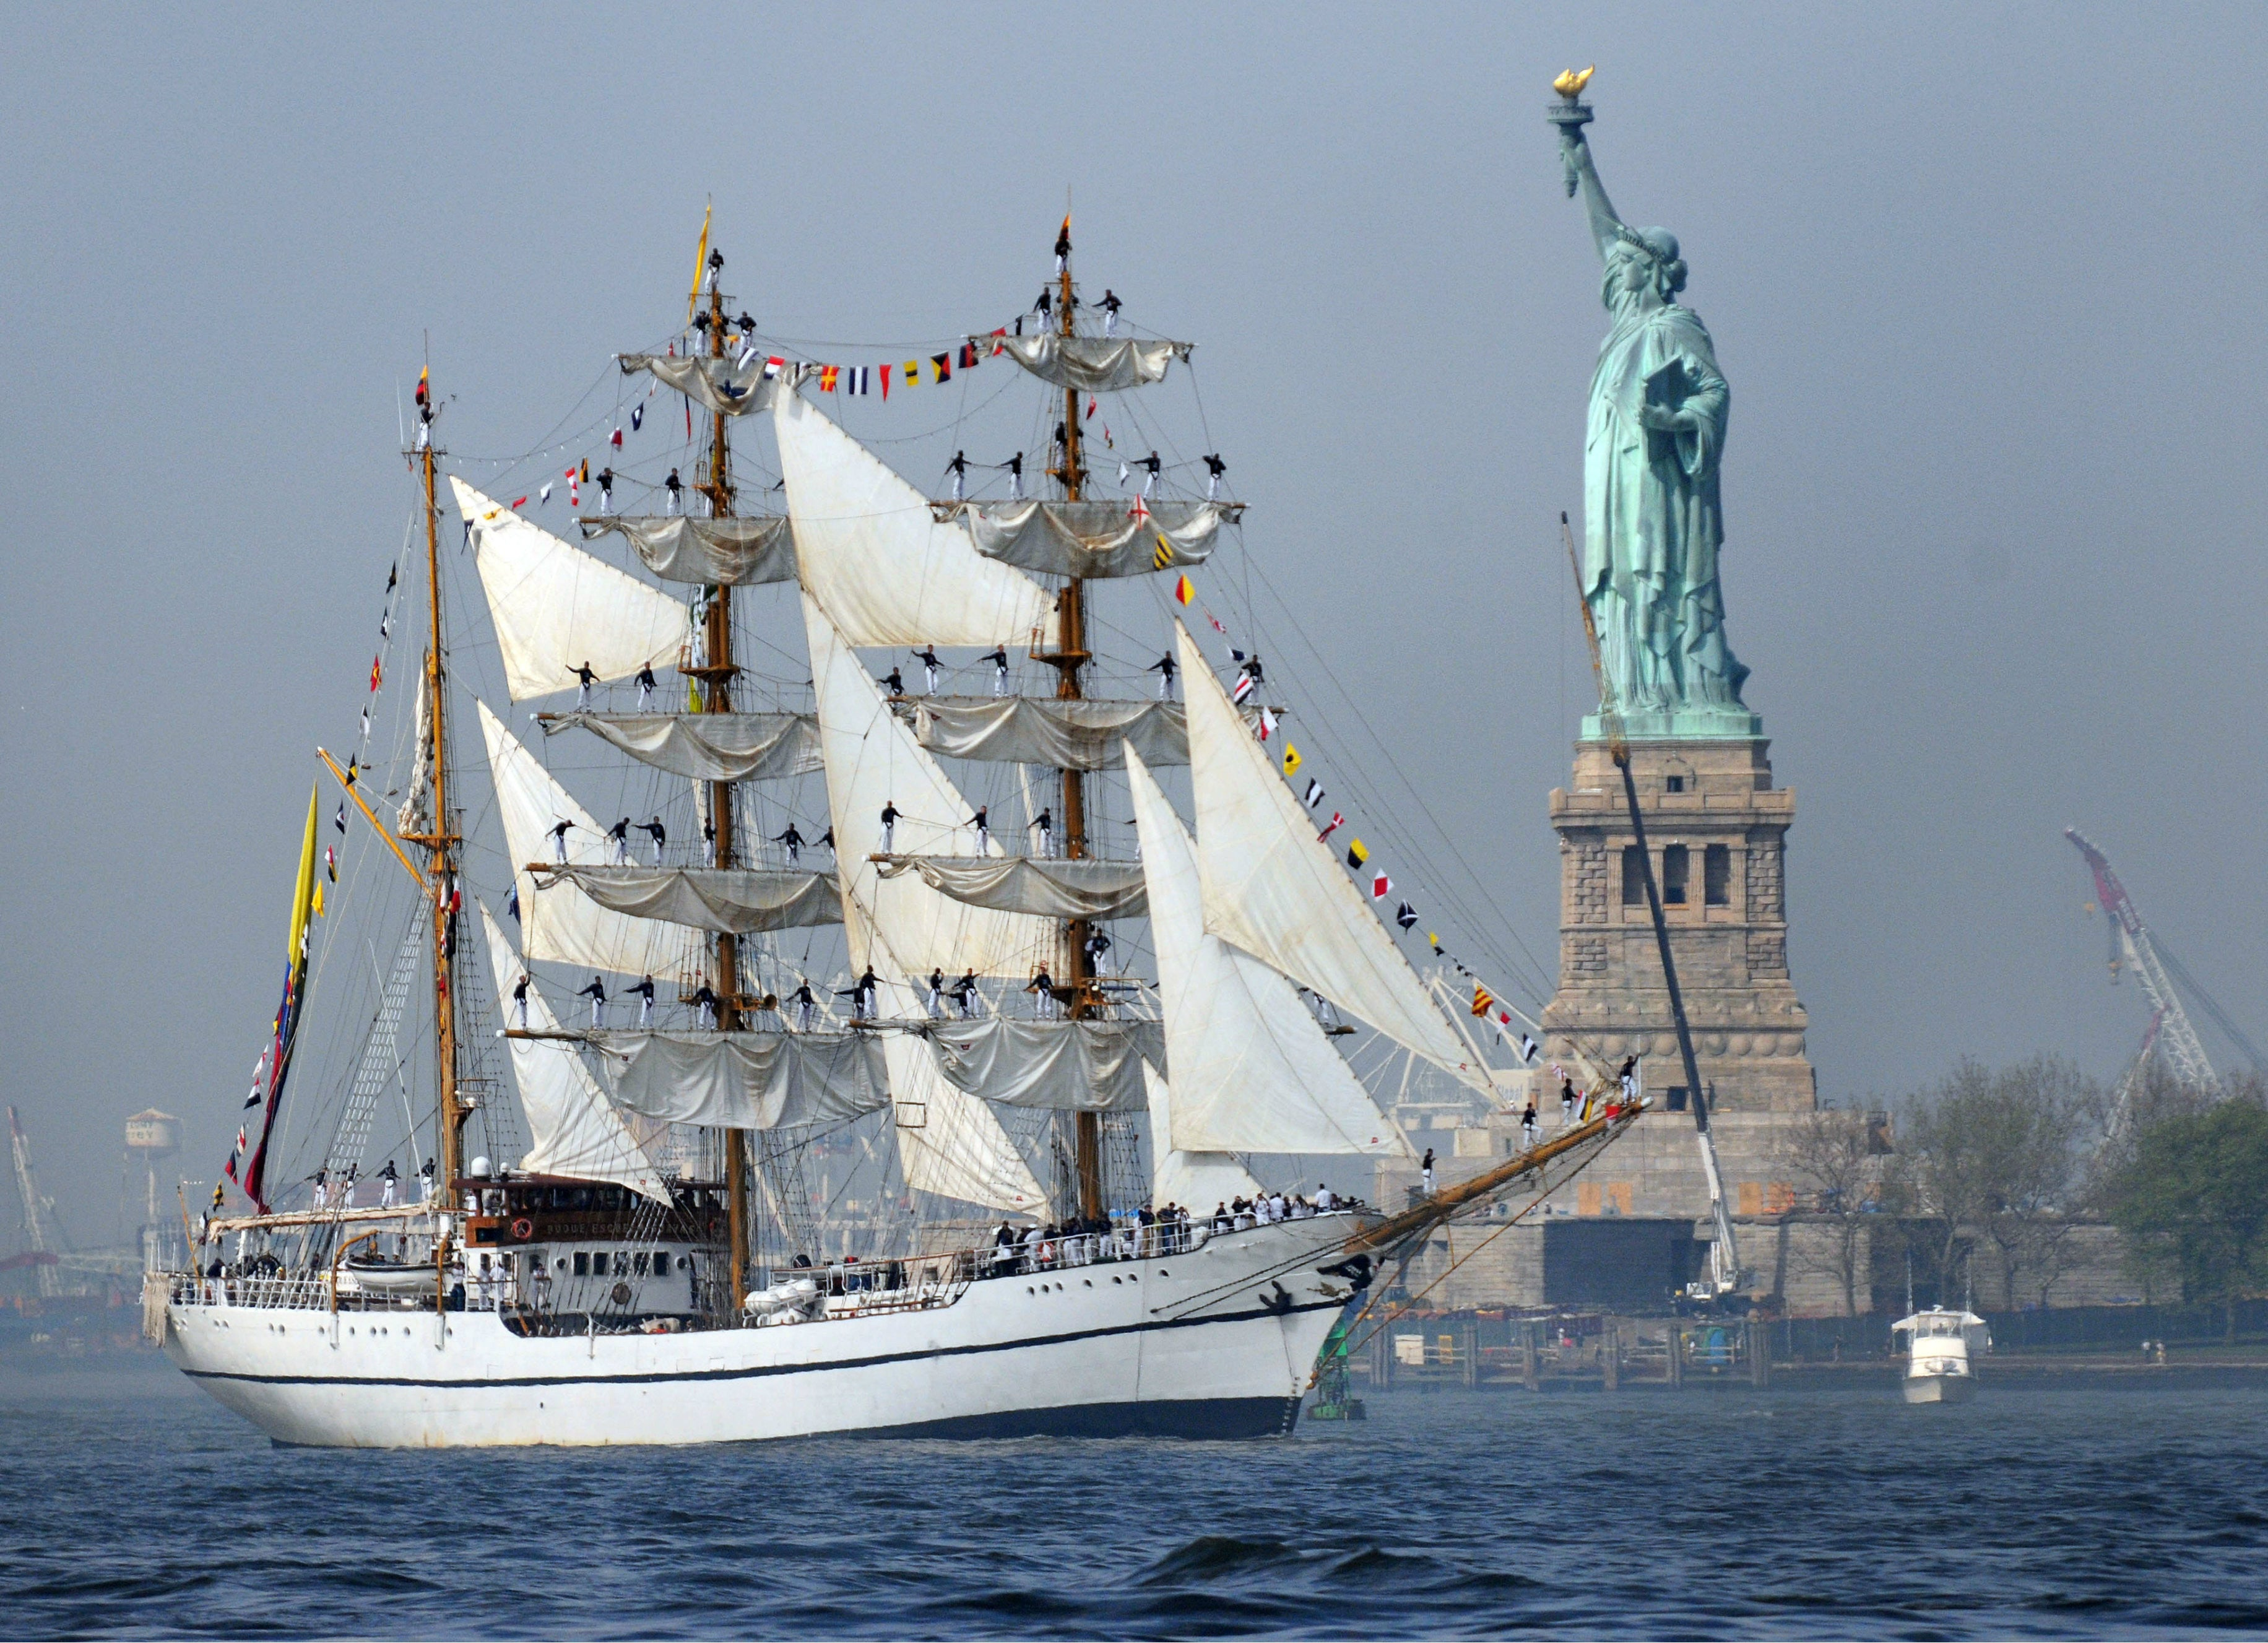 "Ecuadorian Navy BAE Guayas BE-21 Sails Past Statue of Liberty May 23, 2012 - 5 x 7"" Photograph"